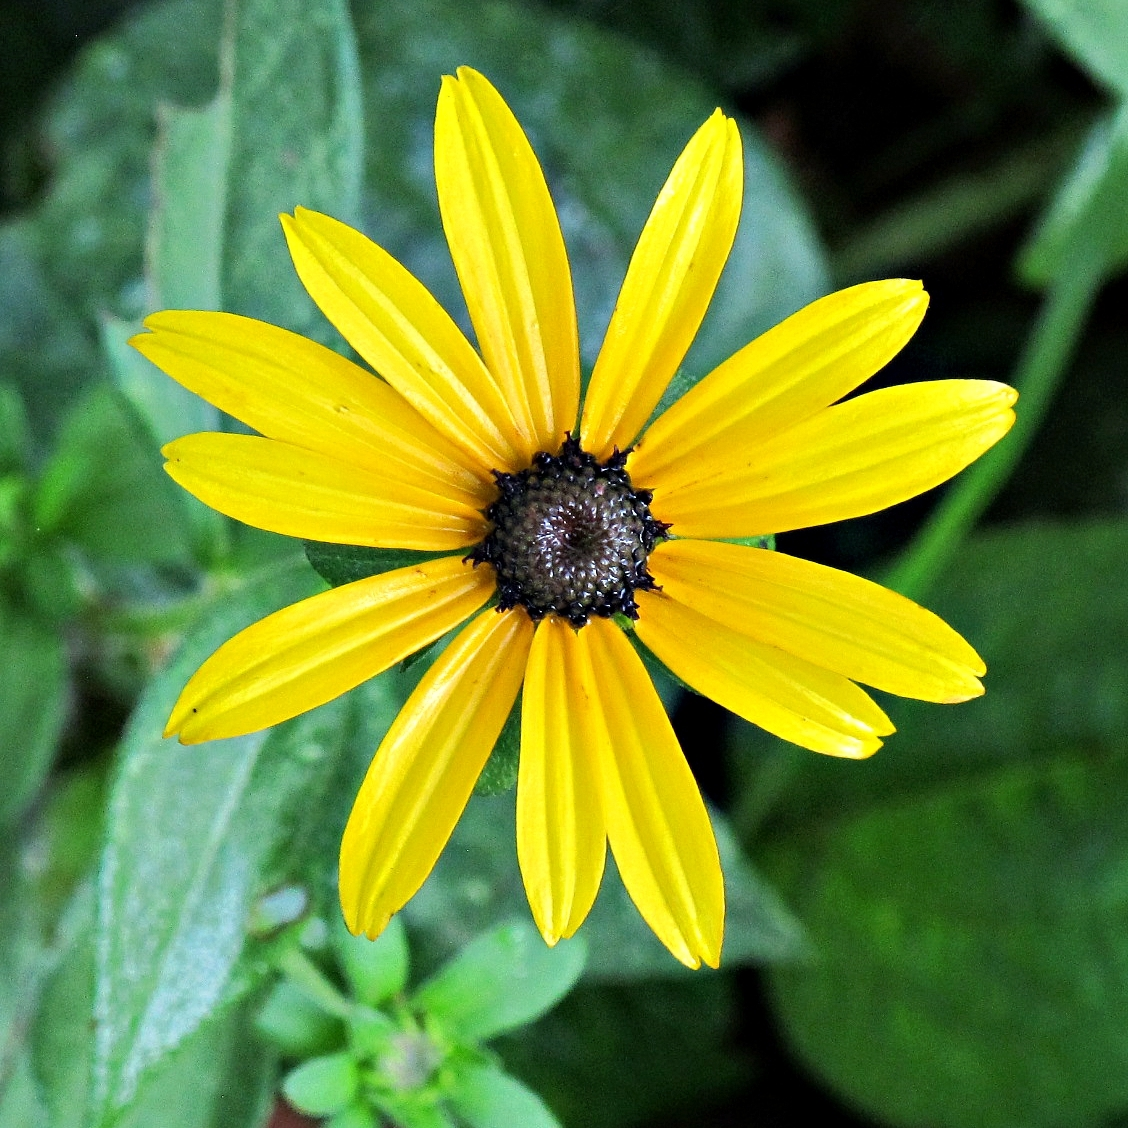 Black-Eyed Susan, Rudbeckia, Maryland State Flower, Kentlands Photowalk, Gaithersburg, Maryland USA IMG 5376 Canon PowerShot G11 Camera Photograph by Roy Kelley Roy and Dolores Kelley Photographs